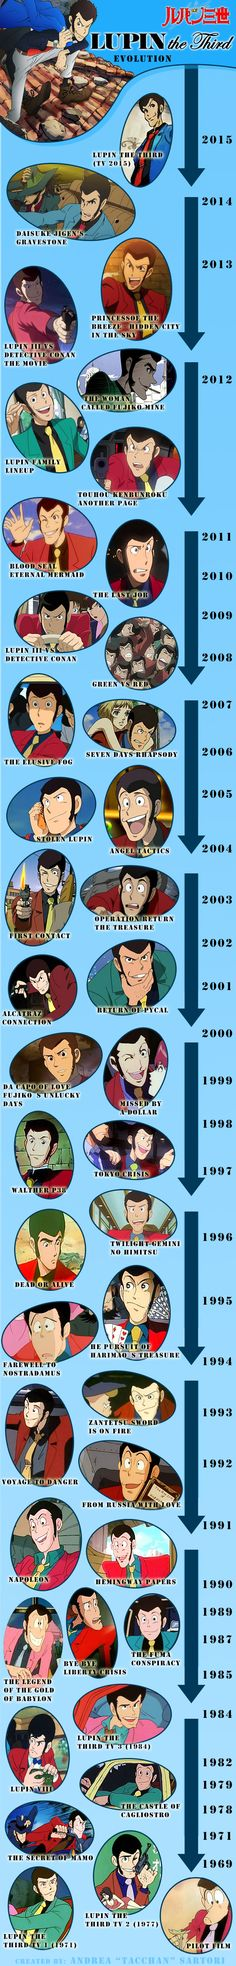 Lupin III - Look evolution from 1969 to 2015